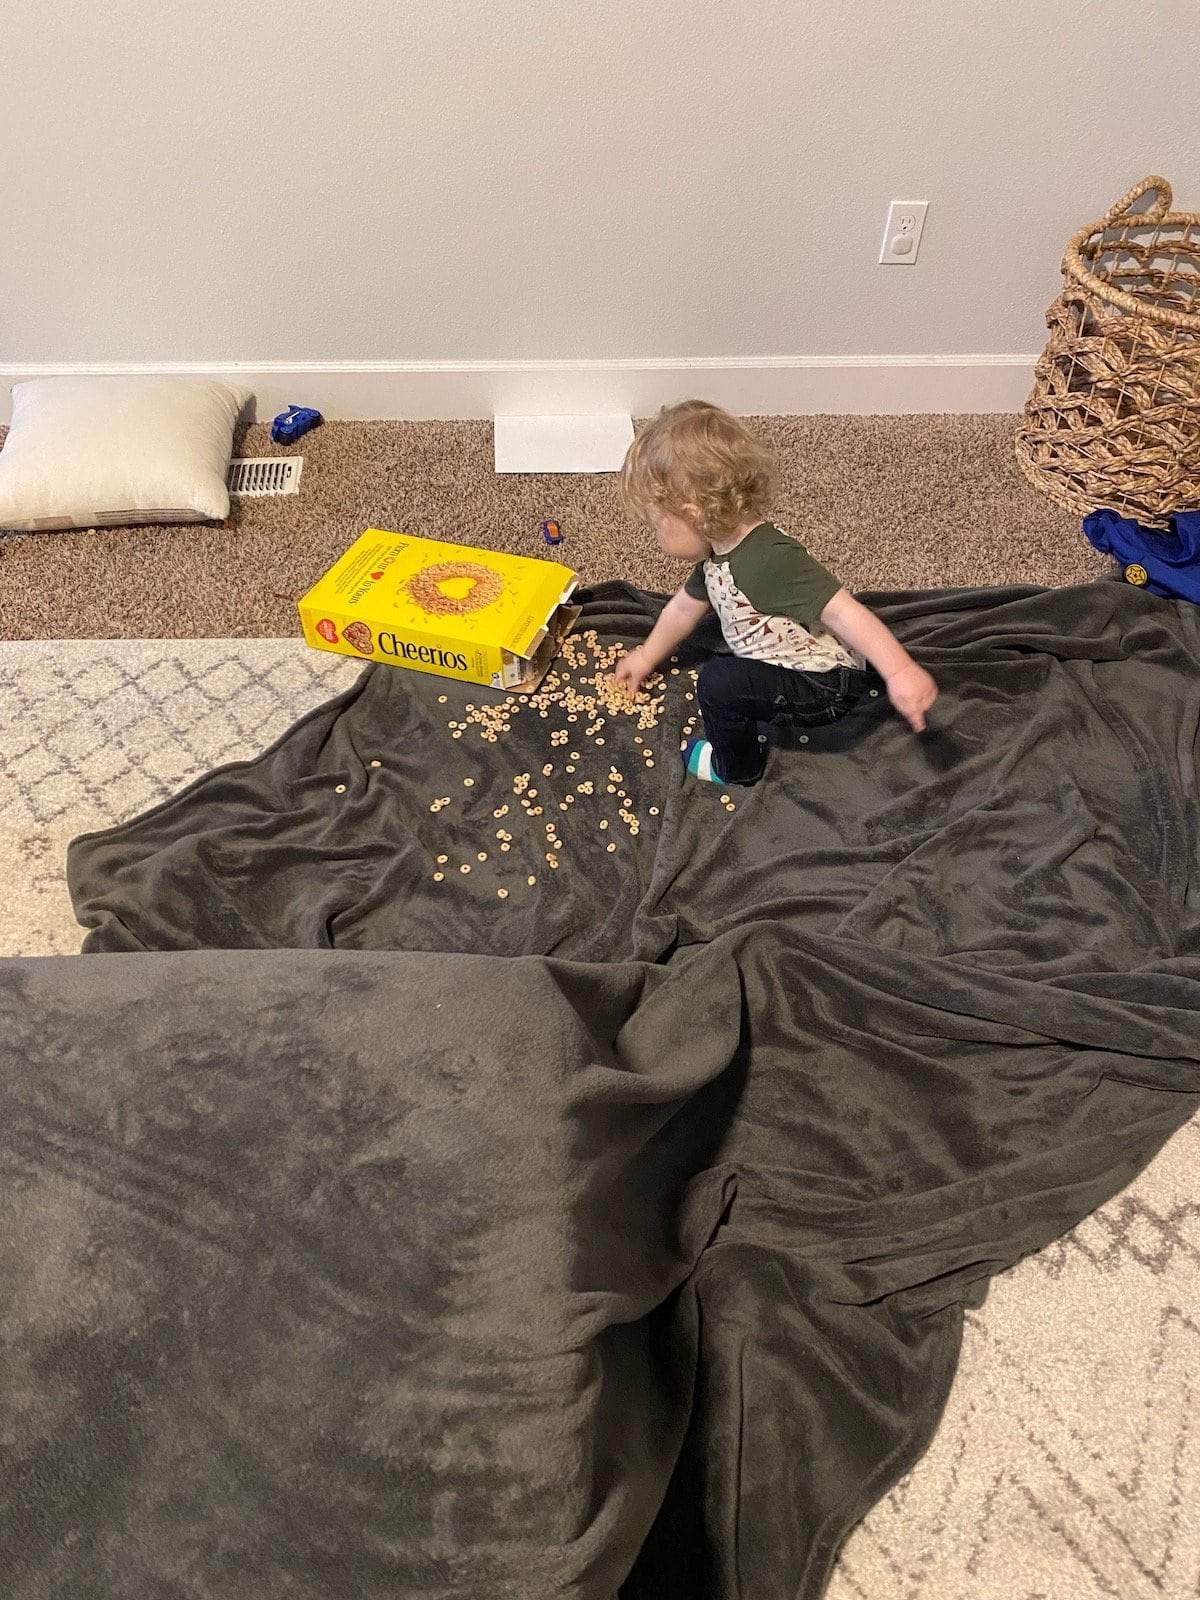 baby with dumped cheerios on blanket